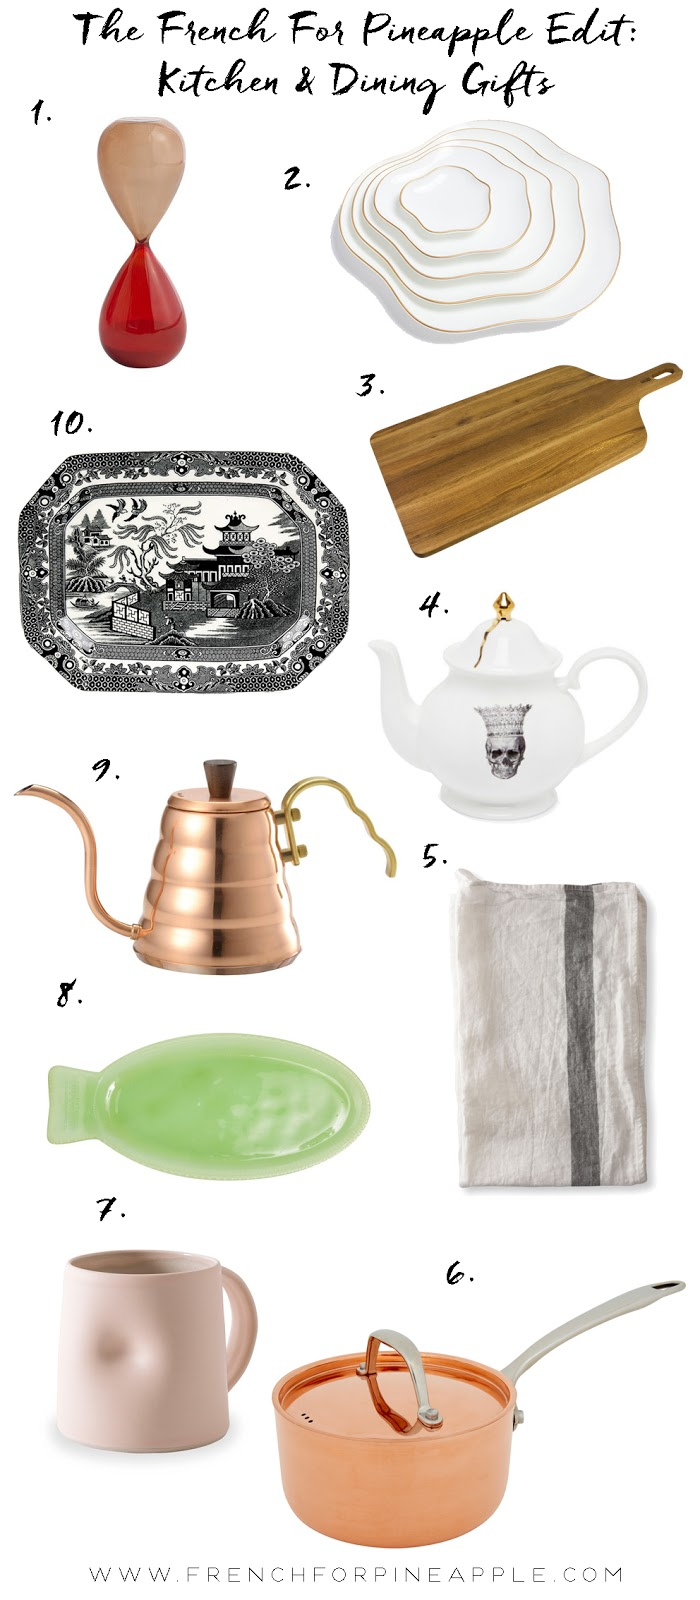 French For PIneapple - Kitchen & Dining Christmas Gift Guide